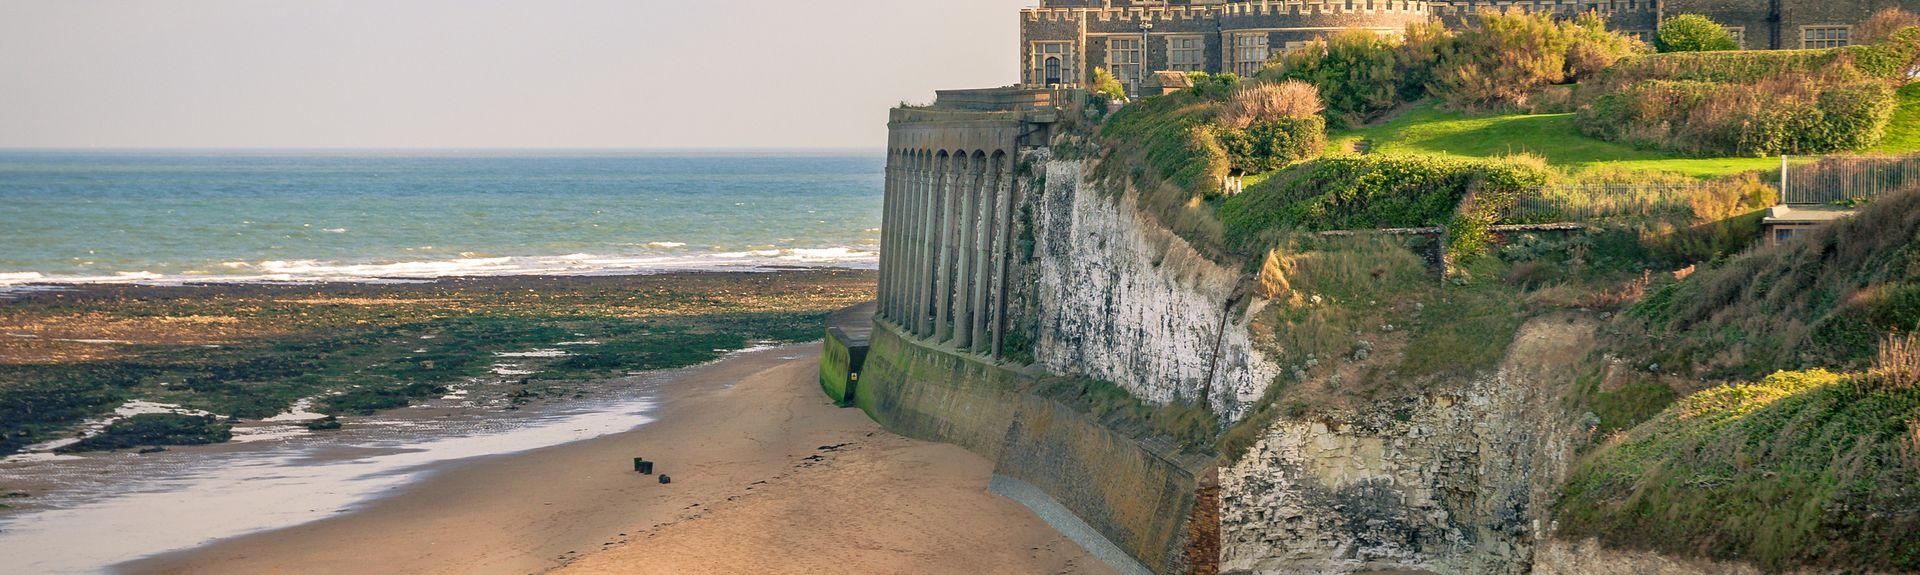 Bed And Breakfast Broadstairs Broadstairs Holiday Lettings Houses More Homeaway